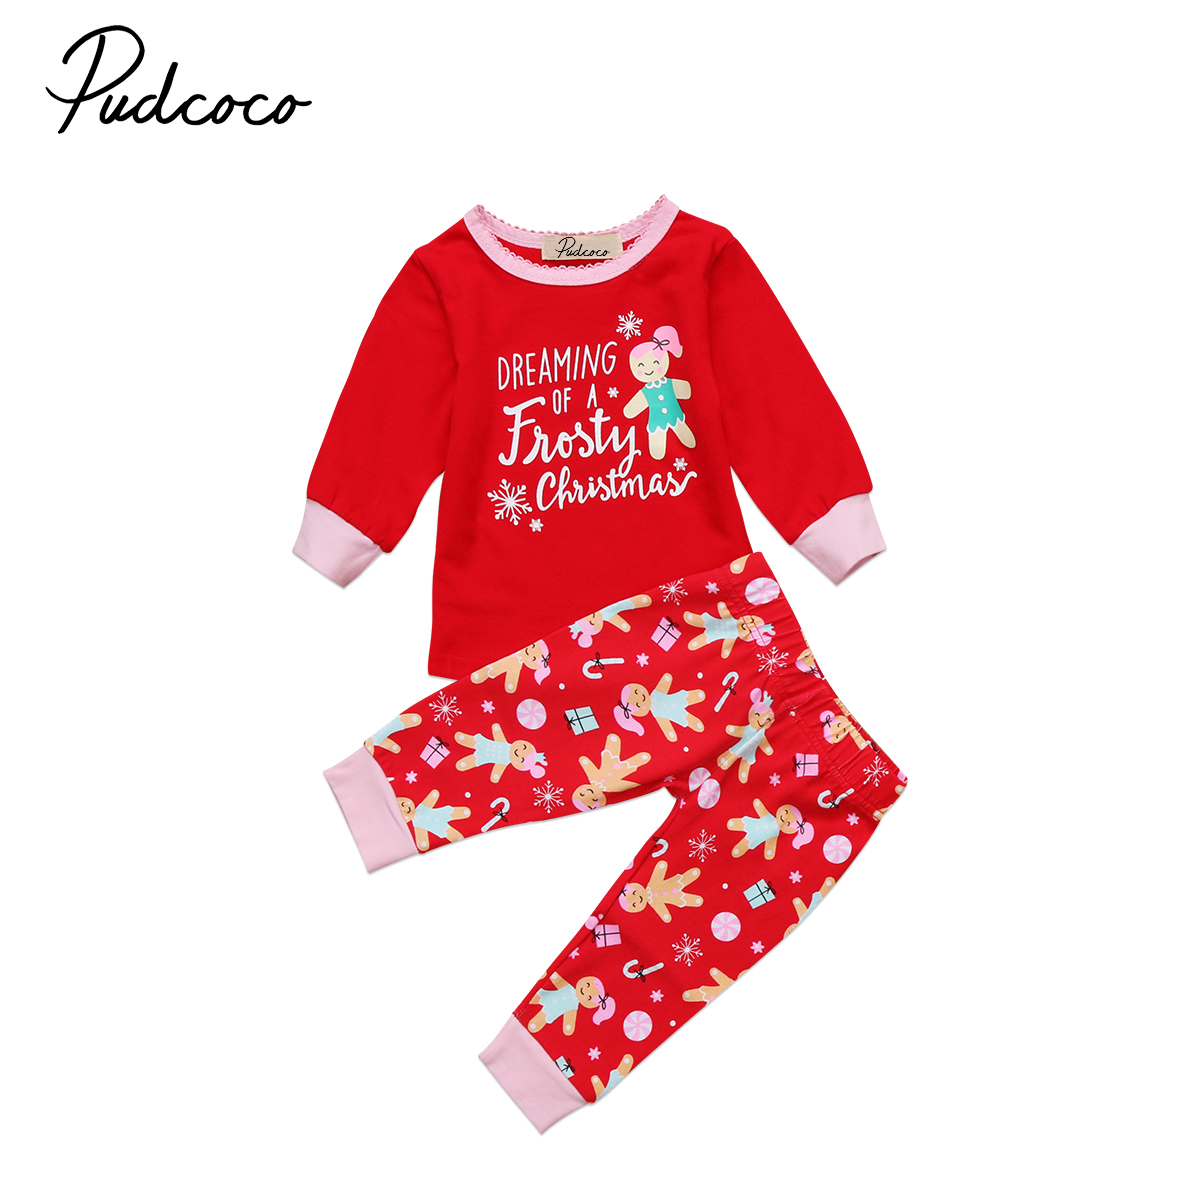 Newborn Toddler Baby Kids Girls Boys Clothes Sets Christmas Pajamas PJs Sets Xmas Sleepwear Nightwear Baby Girl Clothing set of clothes children girls boys baby clothing milk print 3pcs suit toddler kids christmas pajamas sleepwear top 2017 new